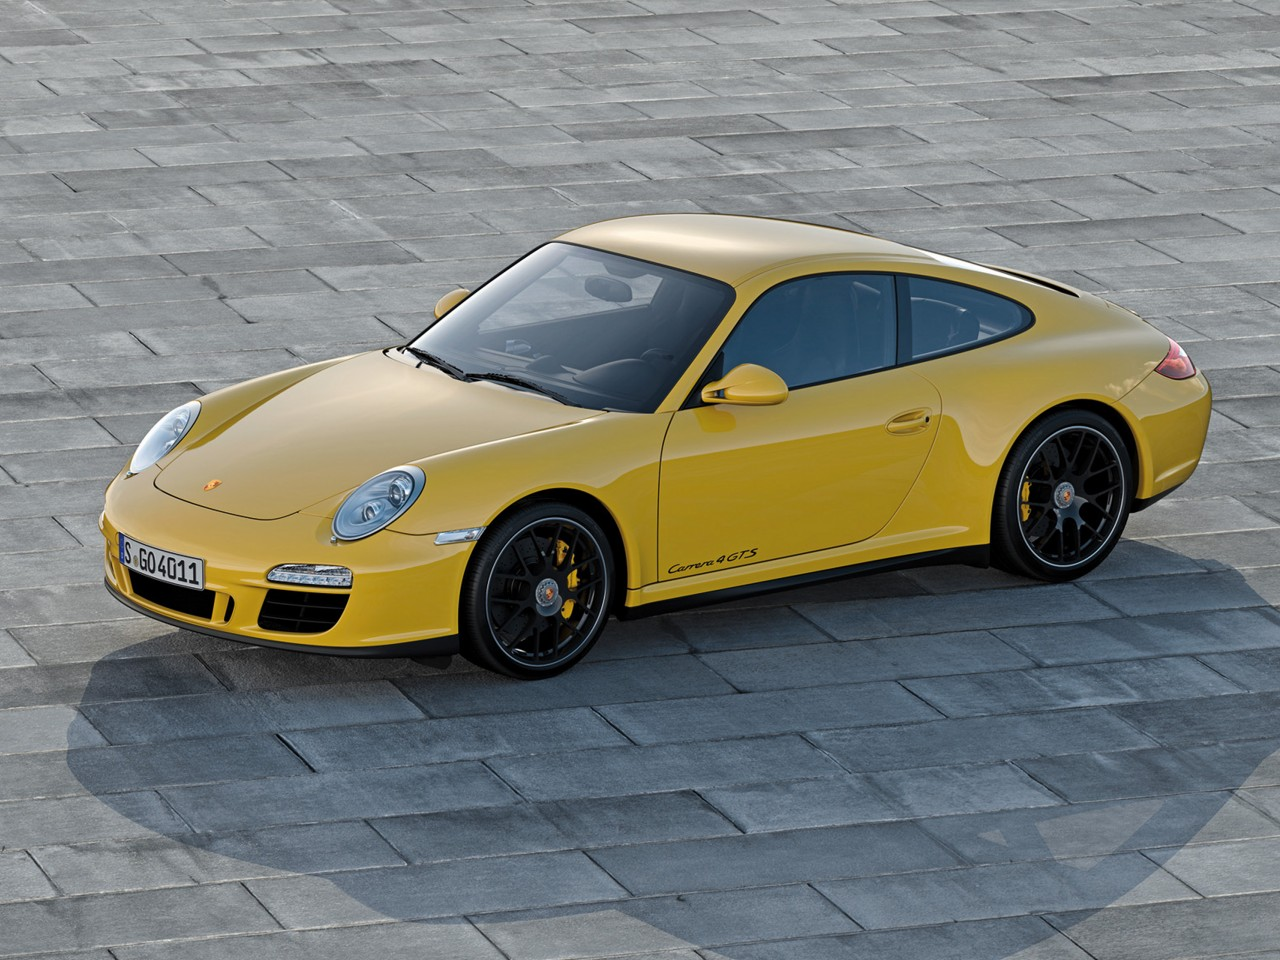 2011 porsche 911 carrera 4 gts motor desktop. Black Bedroom Furniture Sets. Home Design Ideas